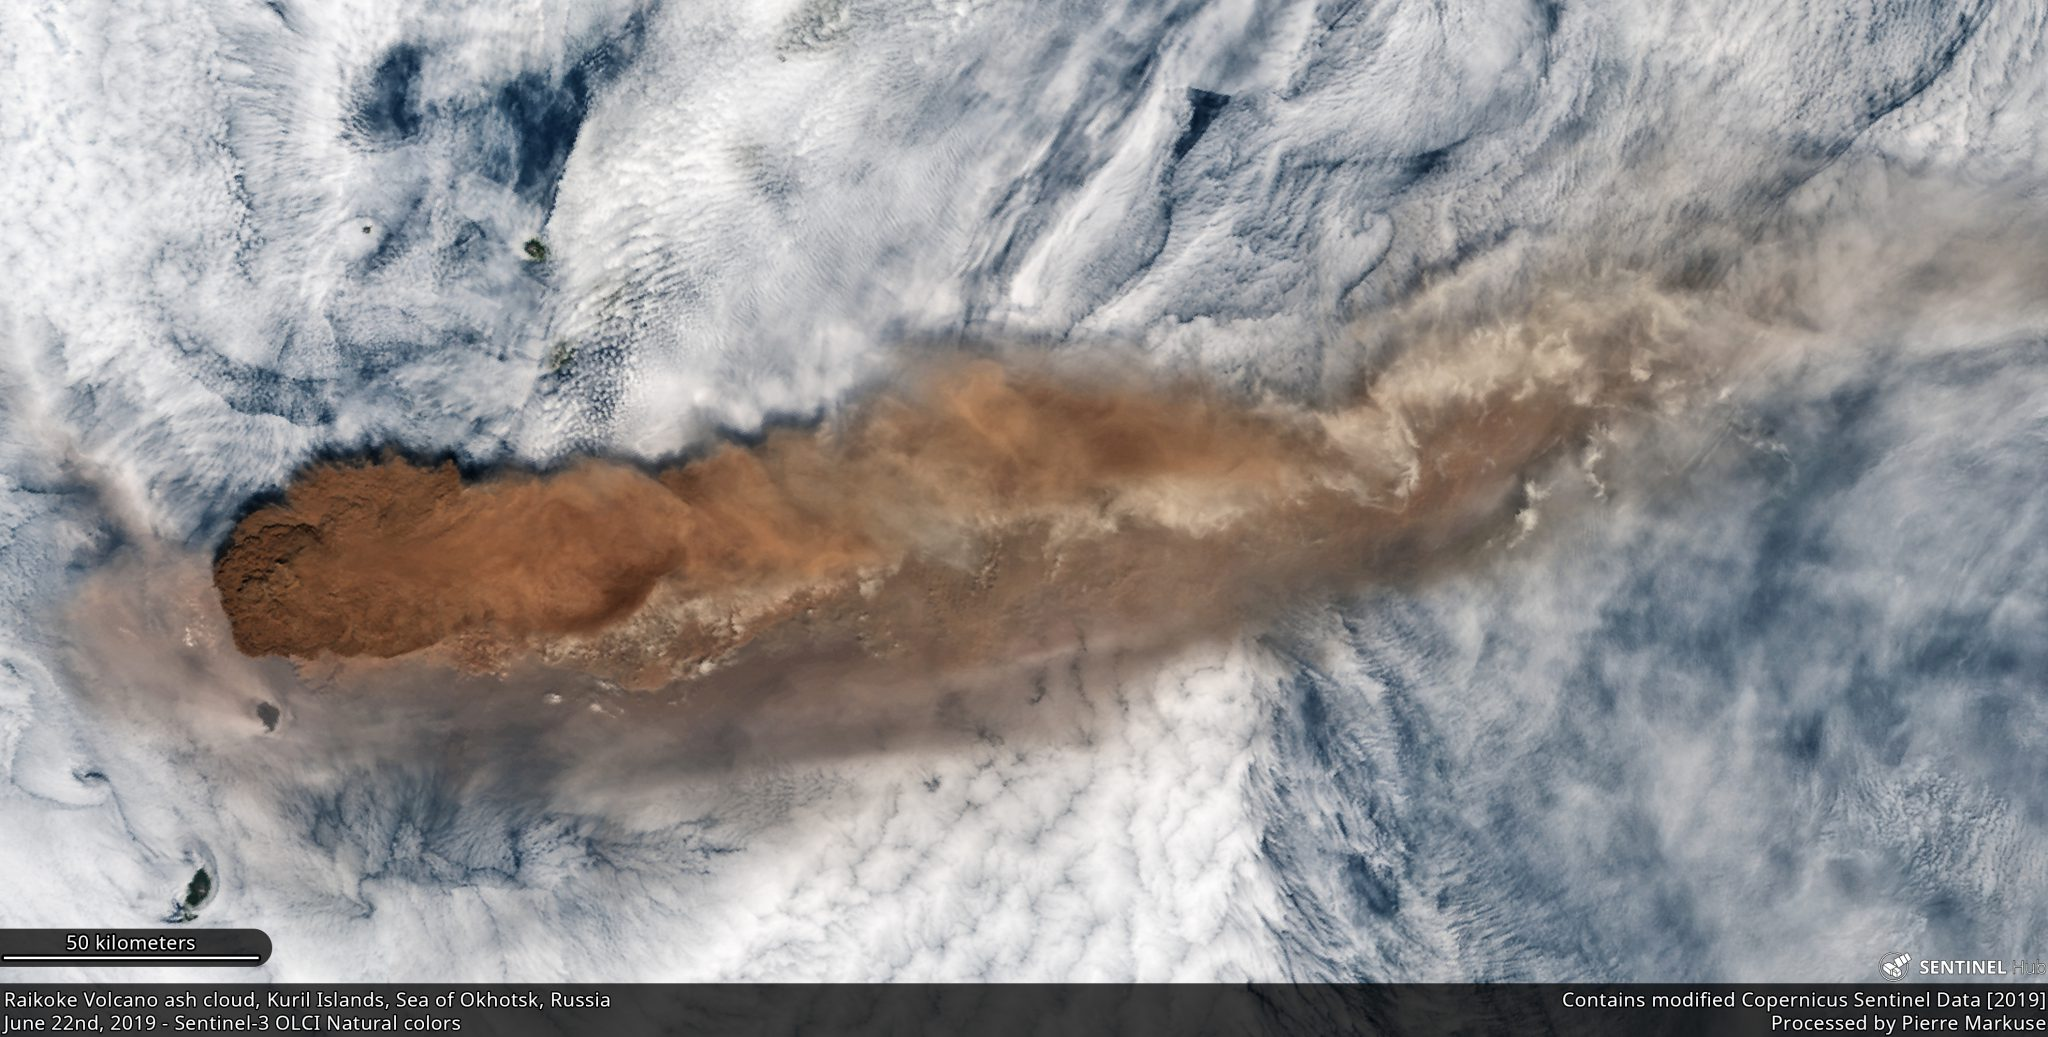 desc:Raikoke Volcano ash cloud, Kuril Islands, Sea of Okhotsk, Russia Copernicus/Pierre Markuse